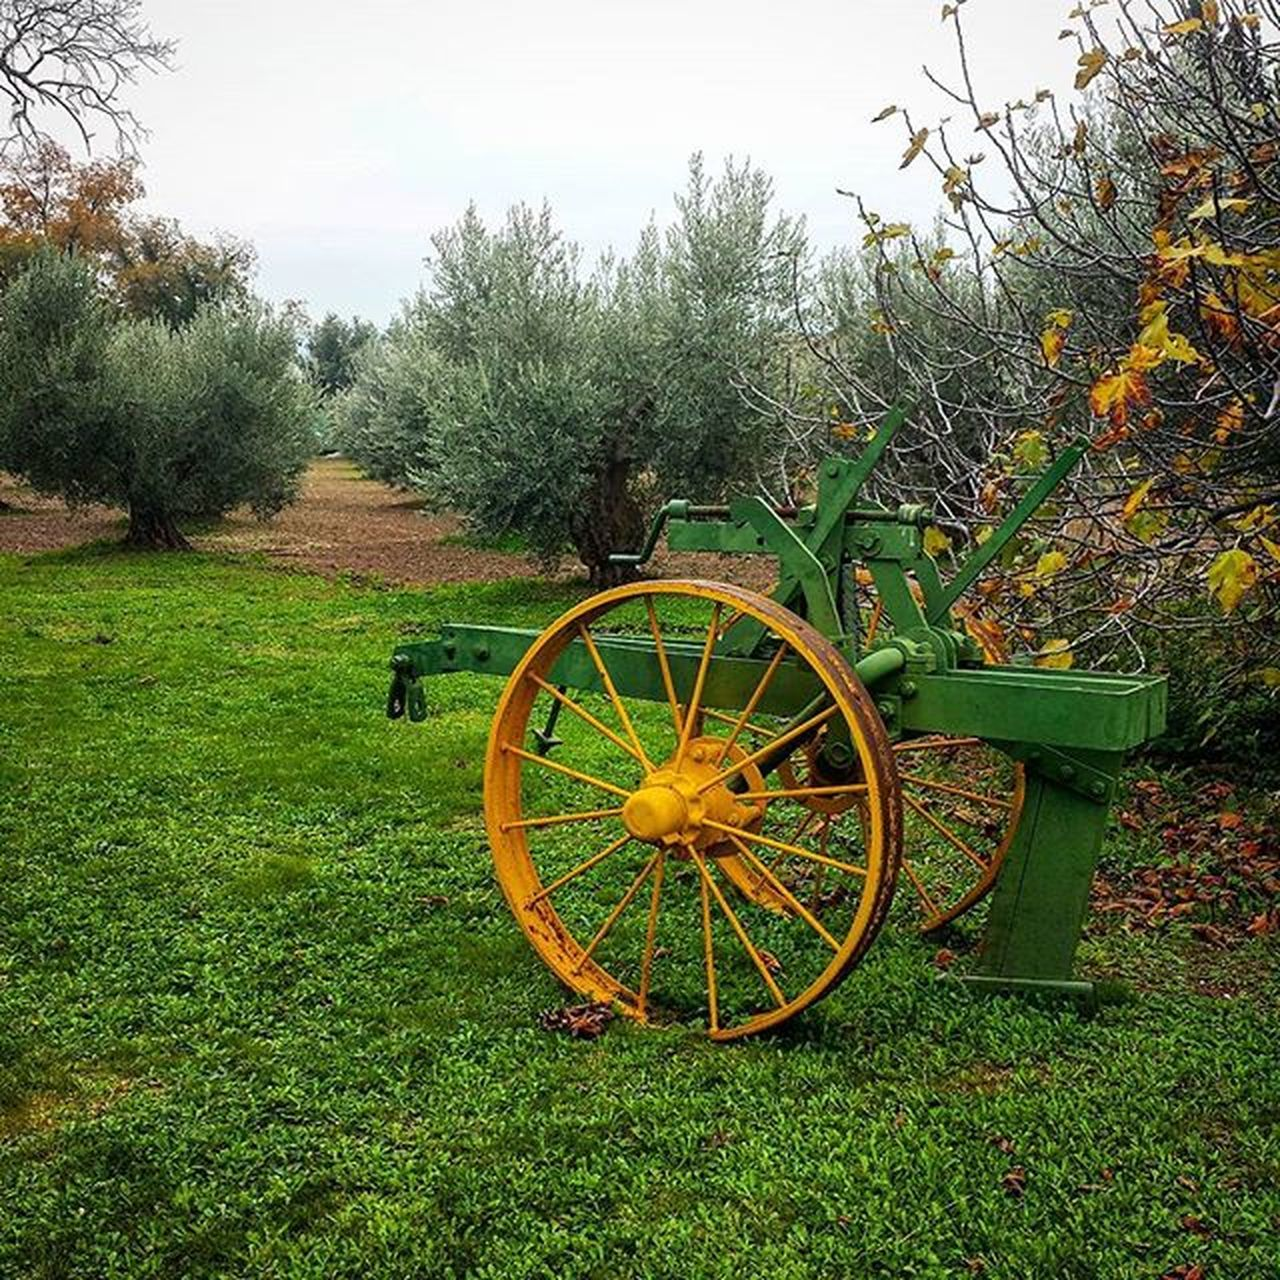 green color, wagon wheel, tree, field, no people, growth, day, wheel, nature, old-fashioned, grass, outdoors, beauty in nature, tranquility, plant, sky